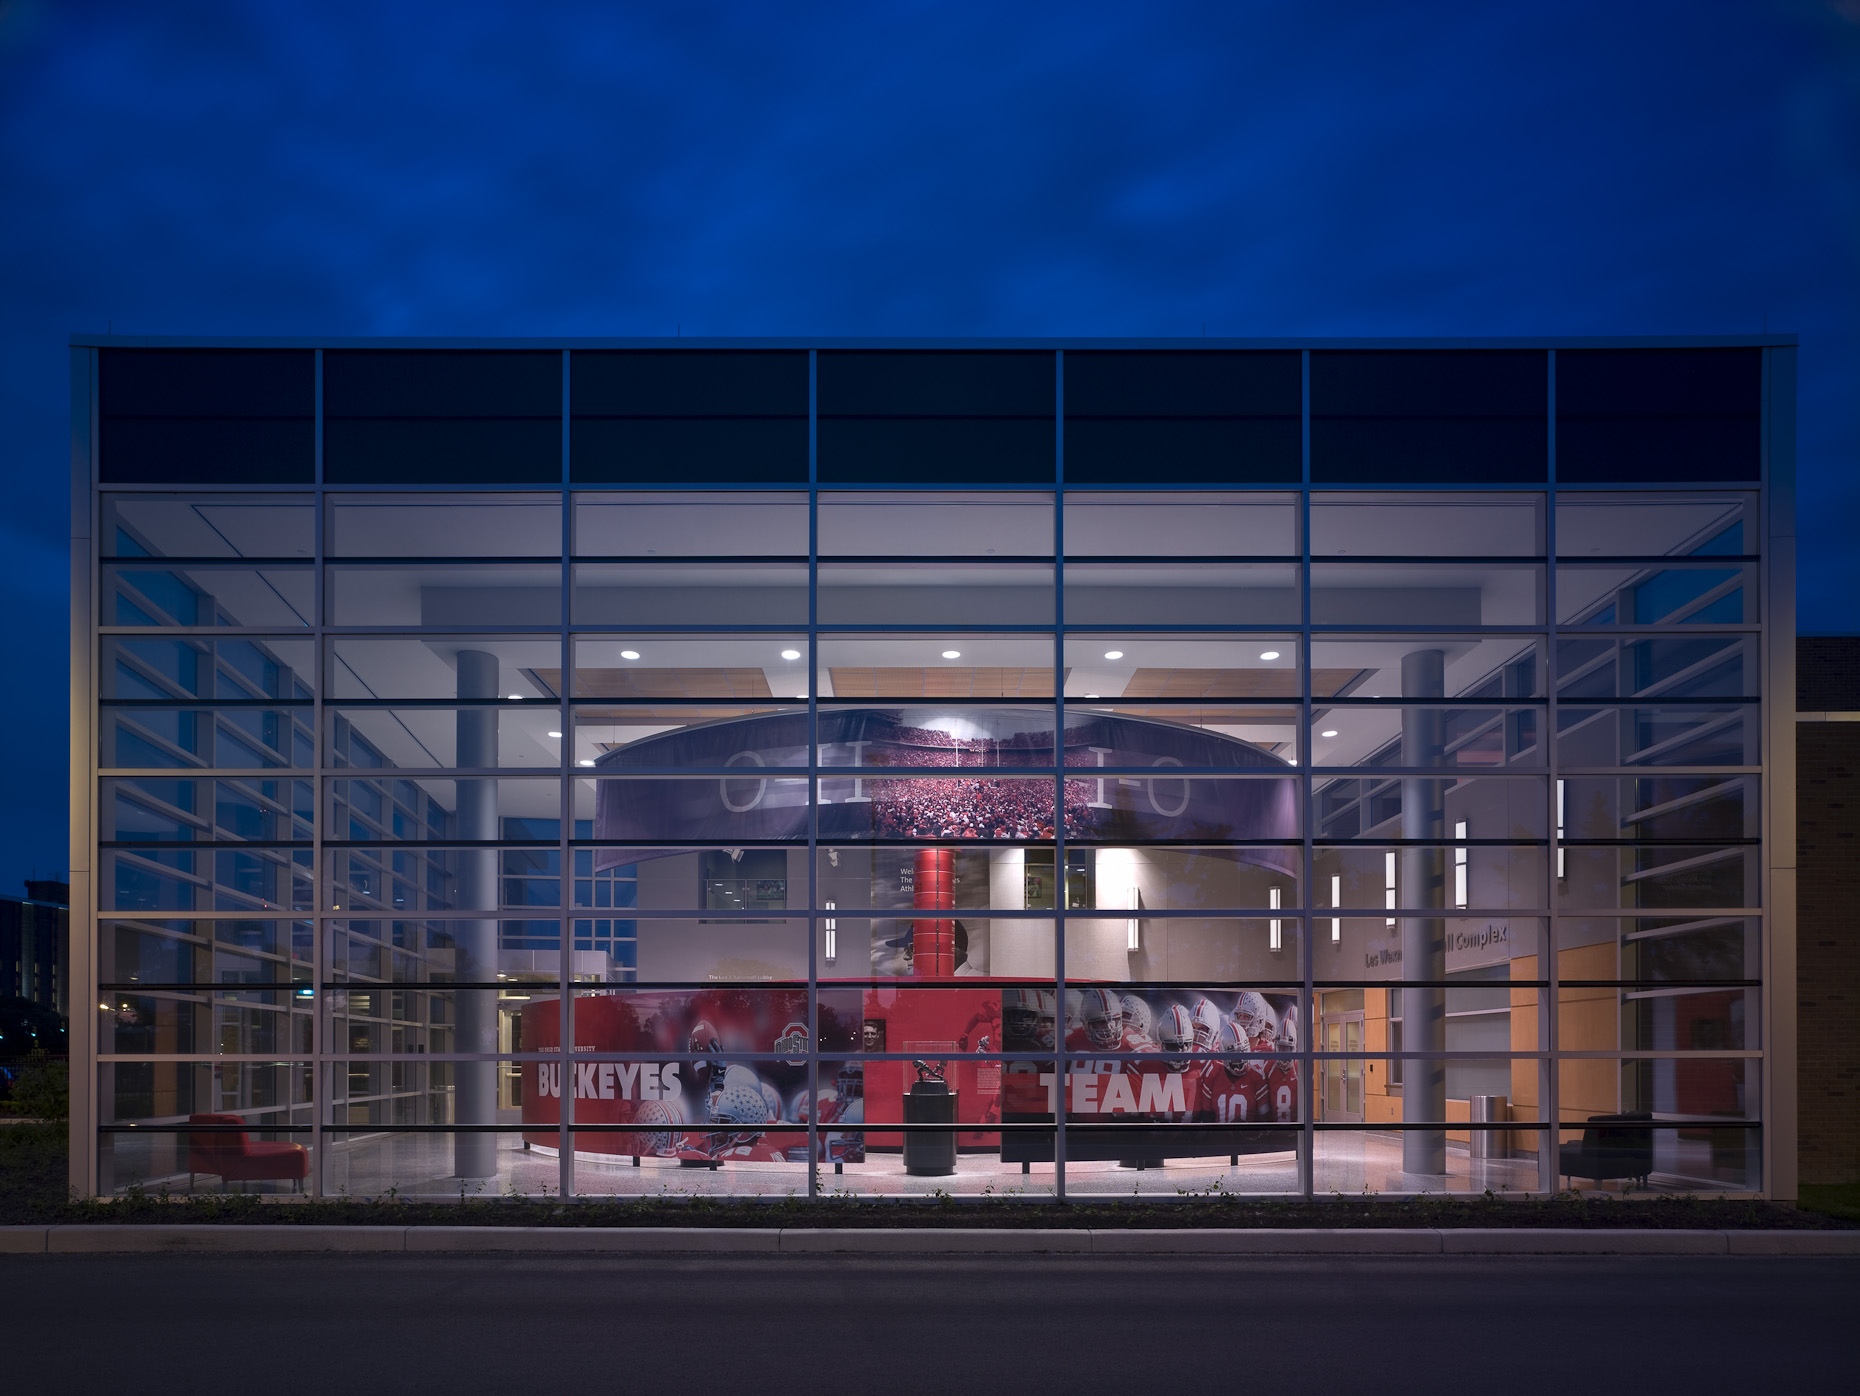 OSU Woody Hayes Athletic Center by Heery photographed by Brad Feinknopf based in Columbus, Ohio